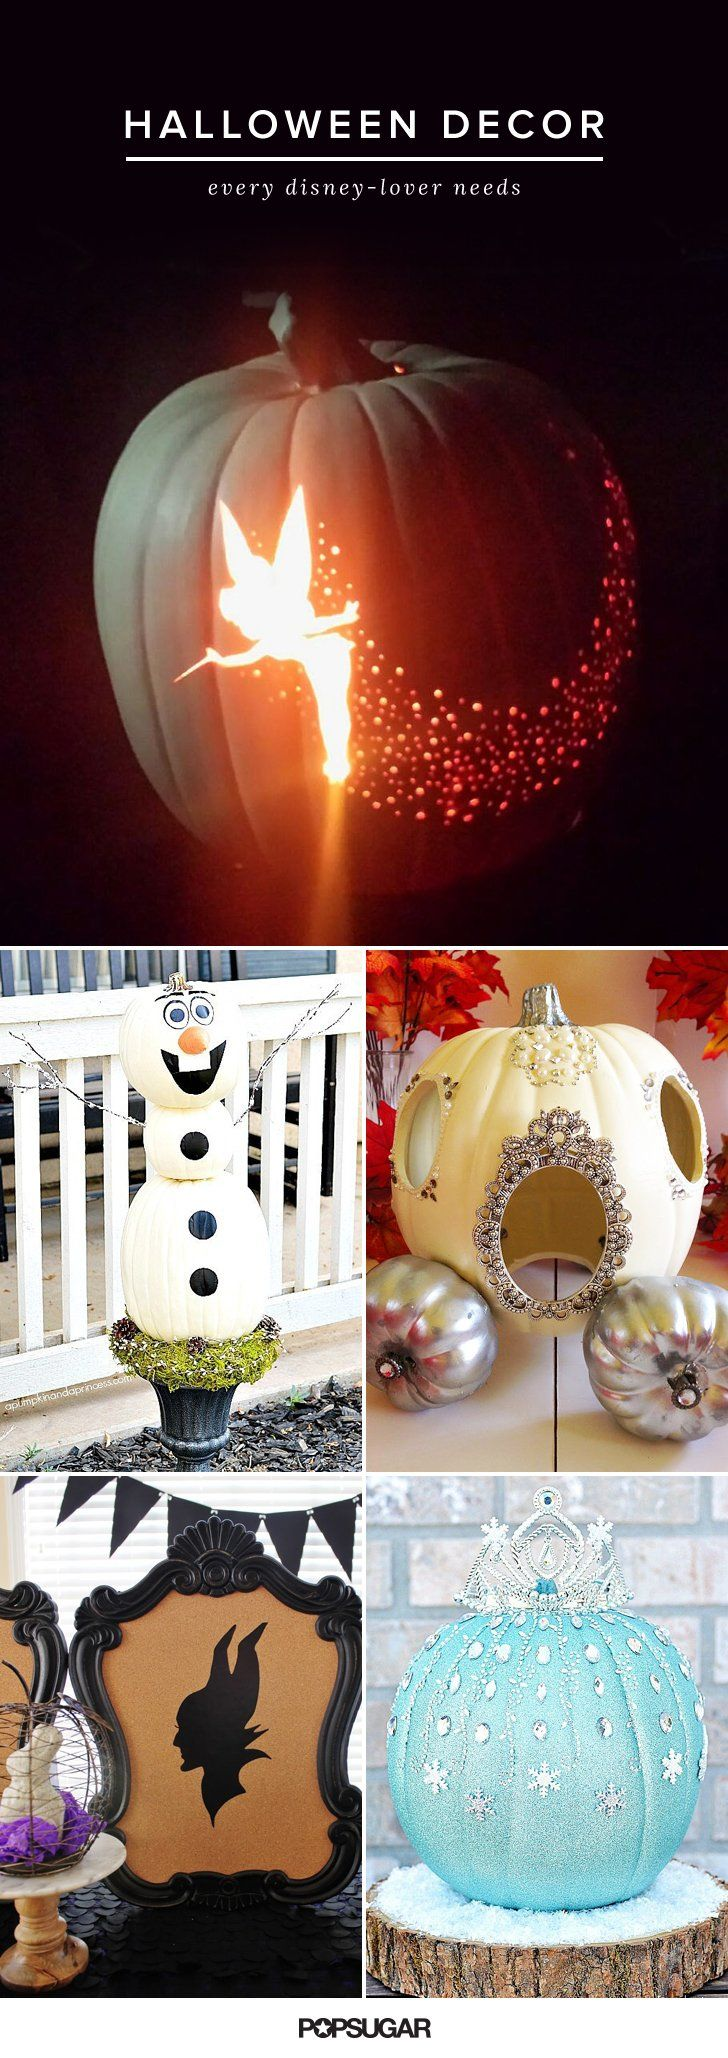 Best 25 Halloween images on Pinterest   Holidays and events